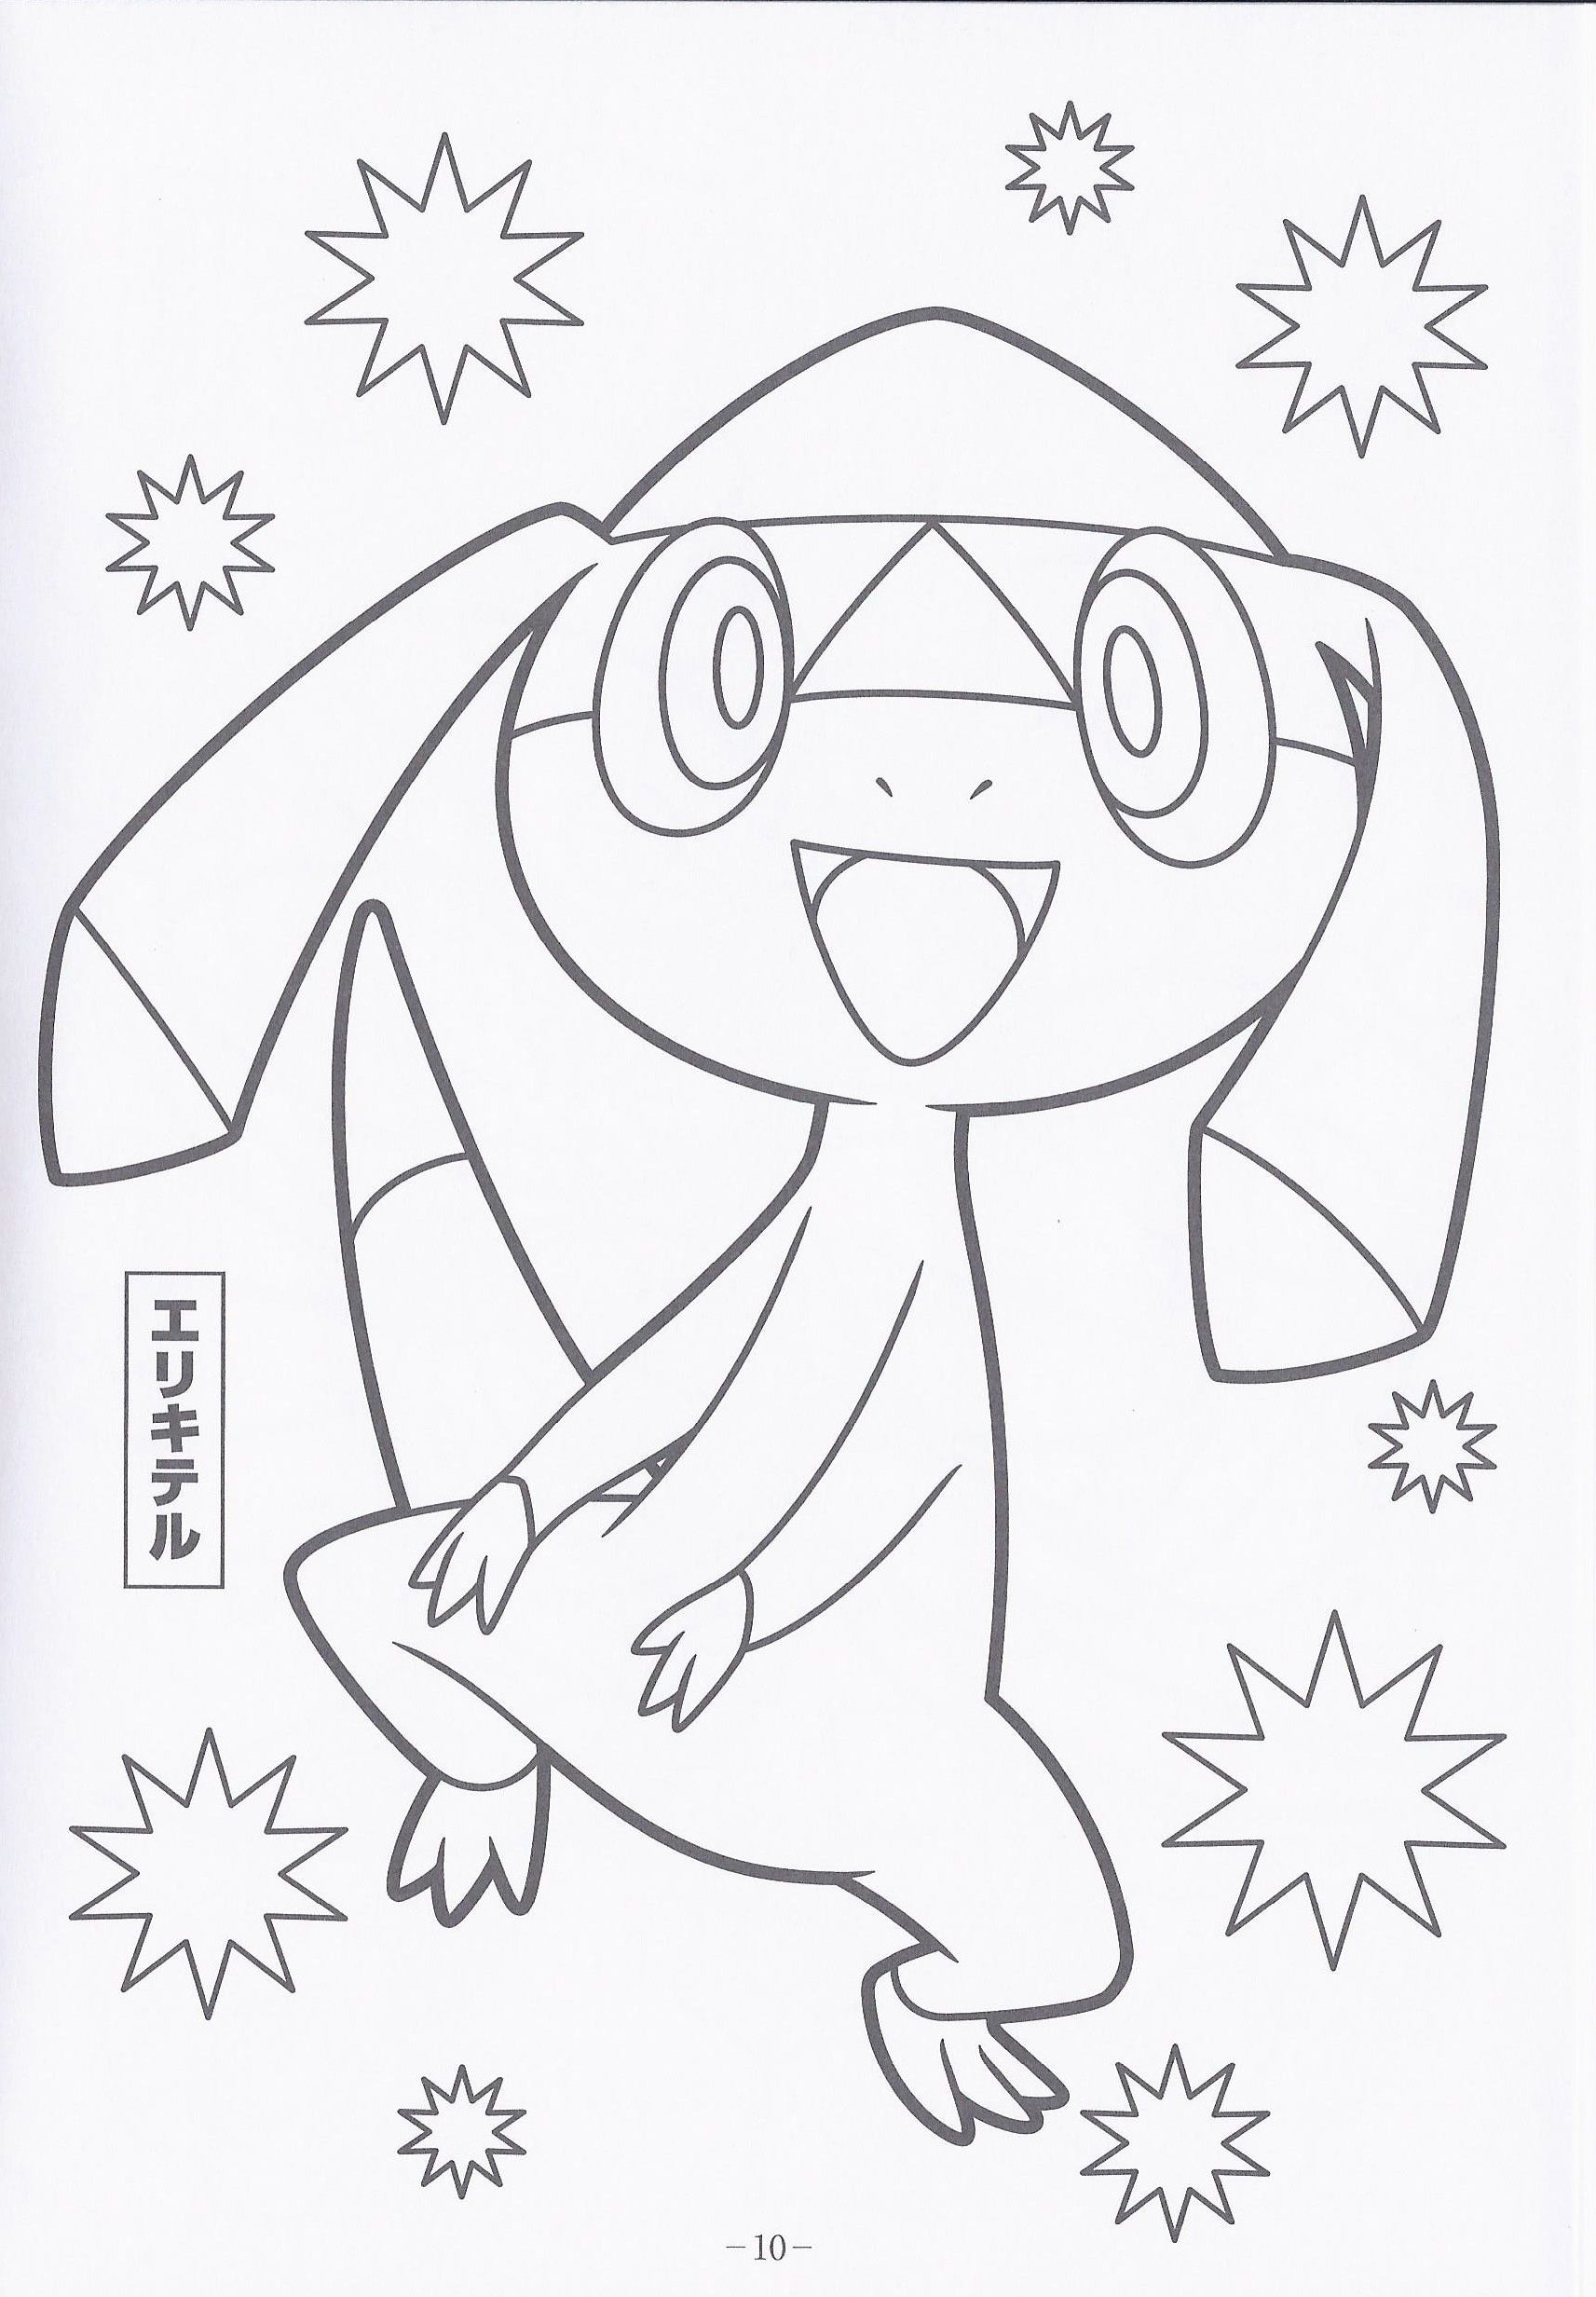 Pin By Austina Nee On Pokemon Xy Coloring Pokemon Coloring Pages Pokemon Coloring Coloring Pages